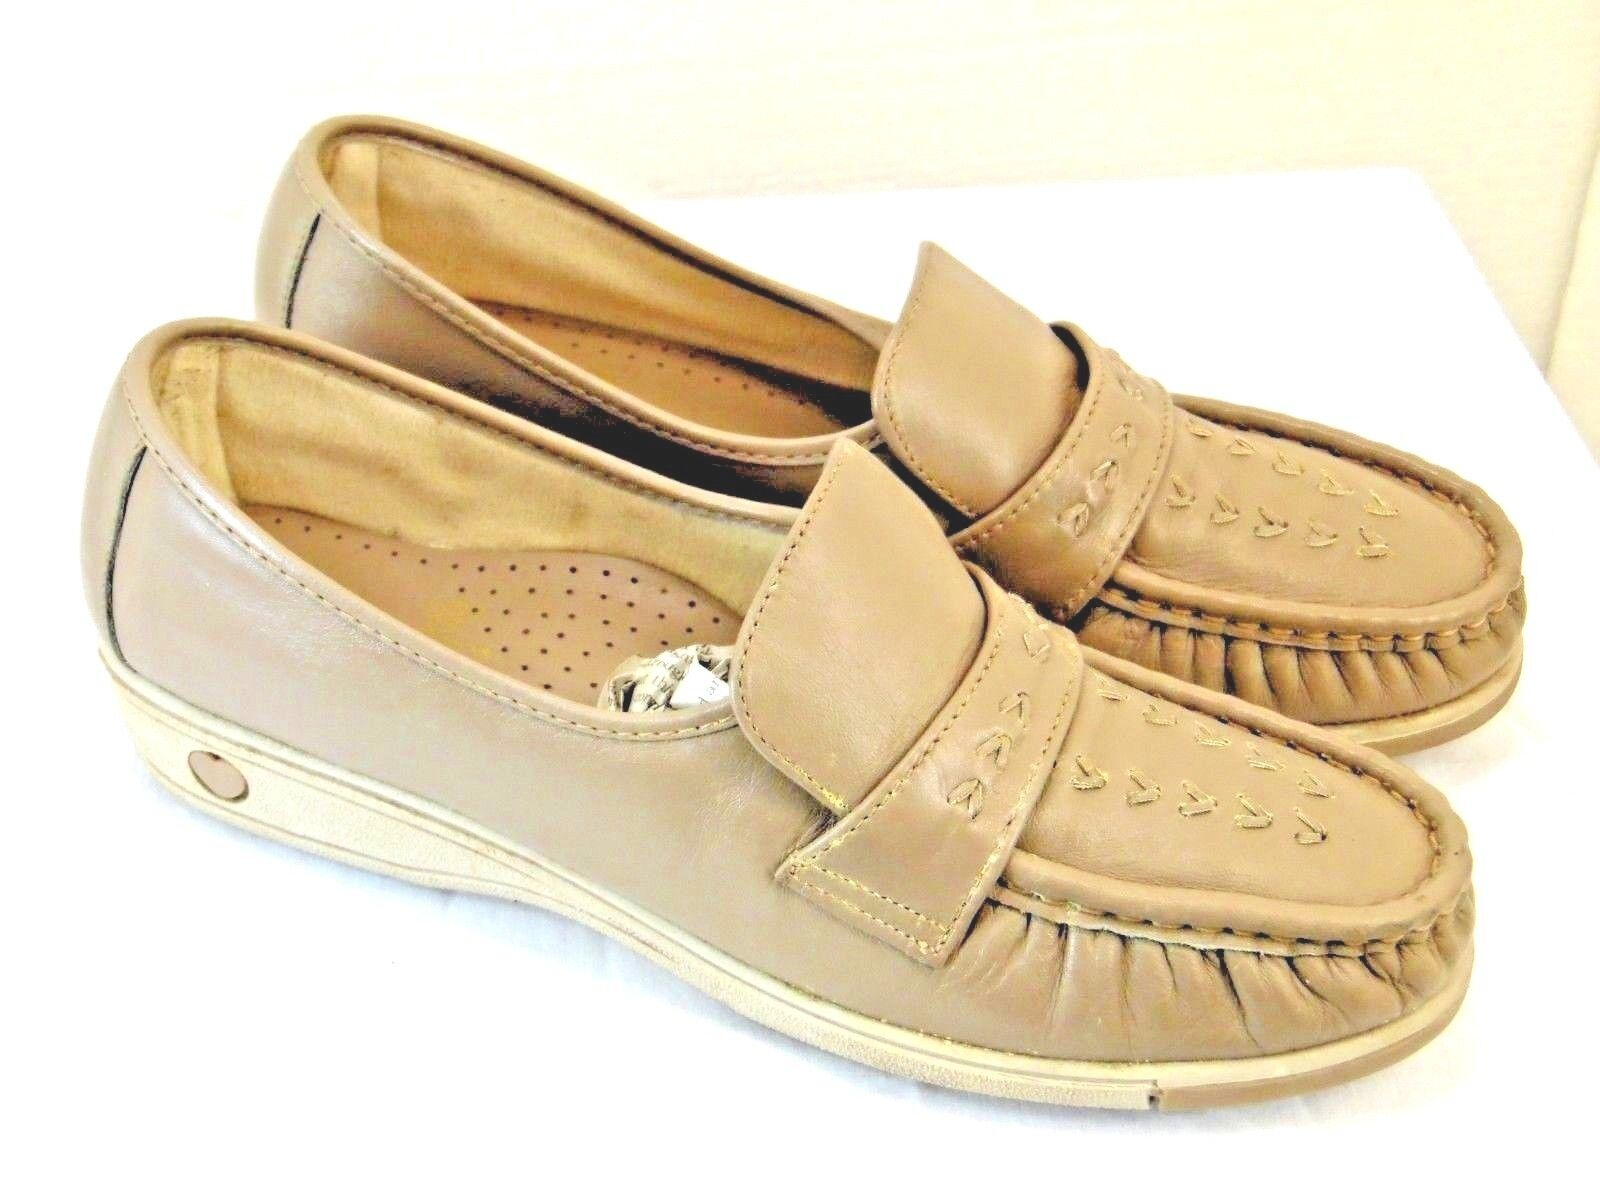 Soft Sports womens casual shoes leather upper  taupe color size 8 1 2 medium YC2